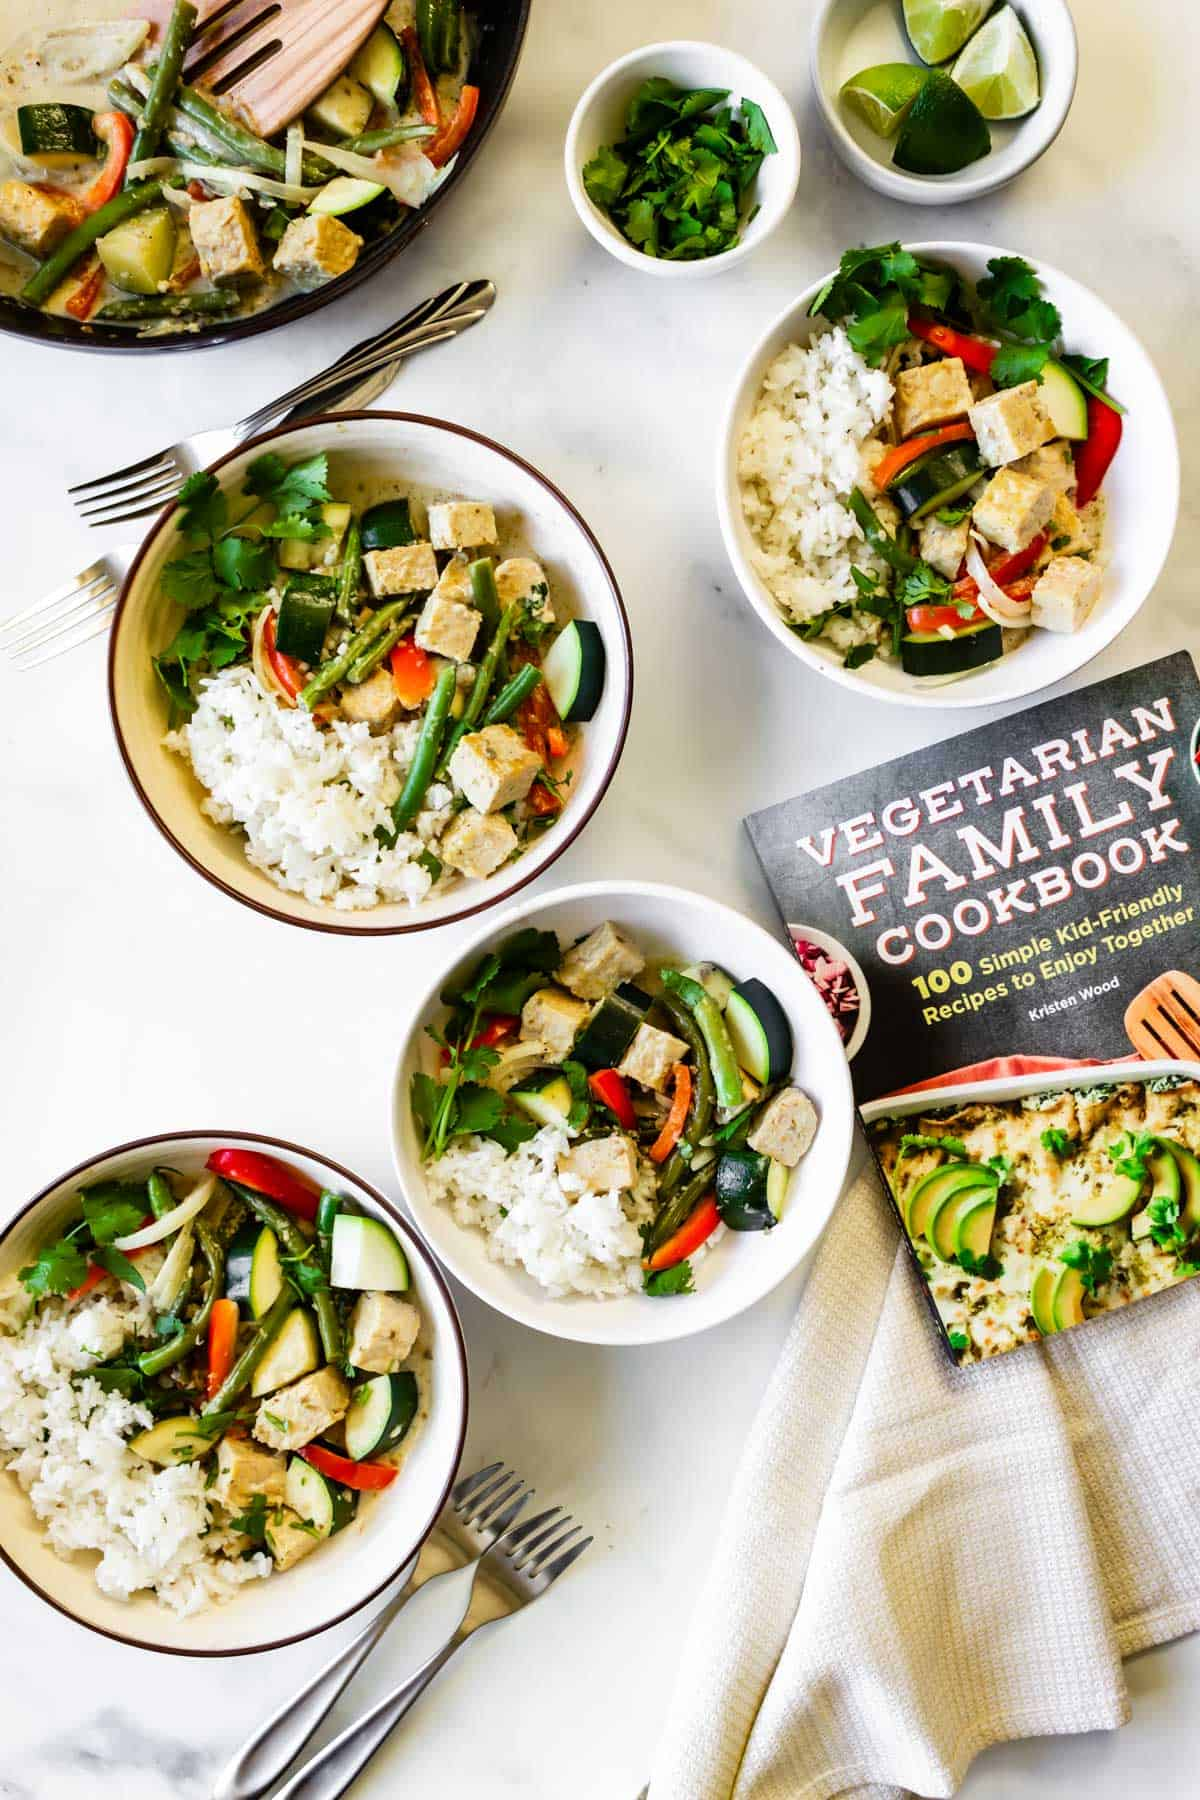 Tempeh green curry rice bowls and a cookbook.